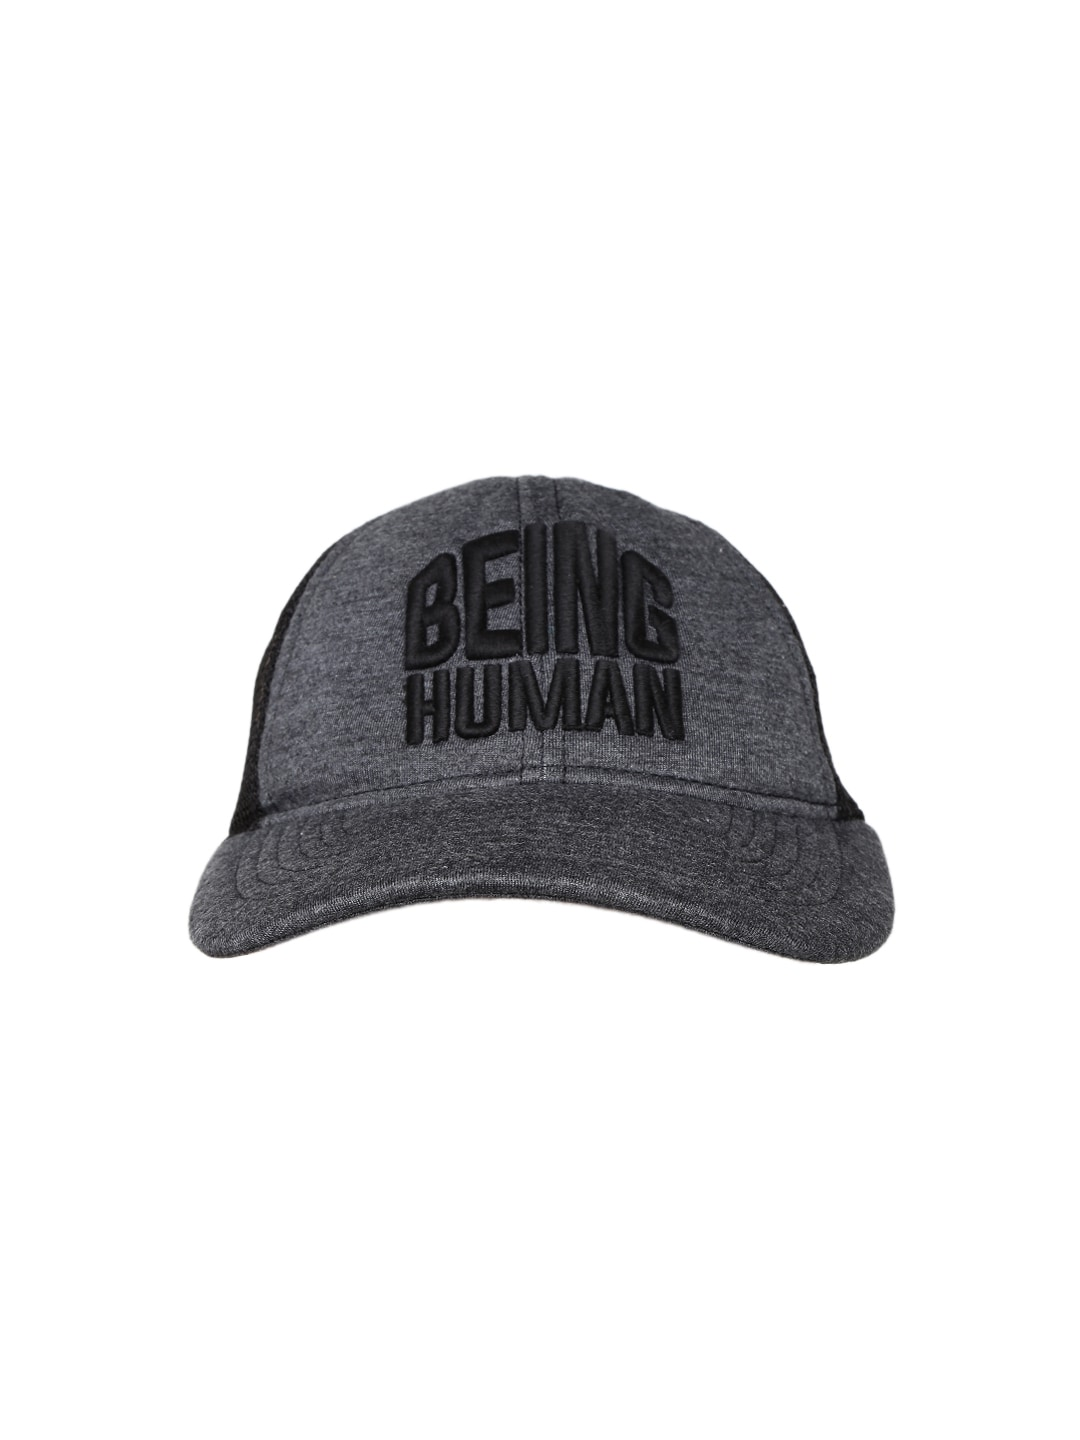 Being human bhc6001-dk-grey Men Charcoal Grey Cap - Best Price in ... e034ca410e0